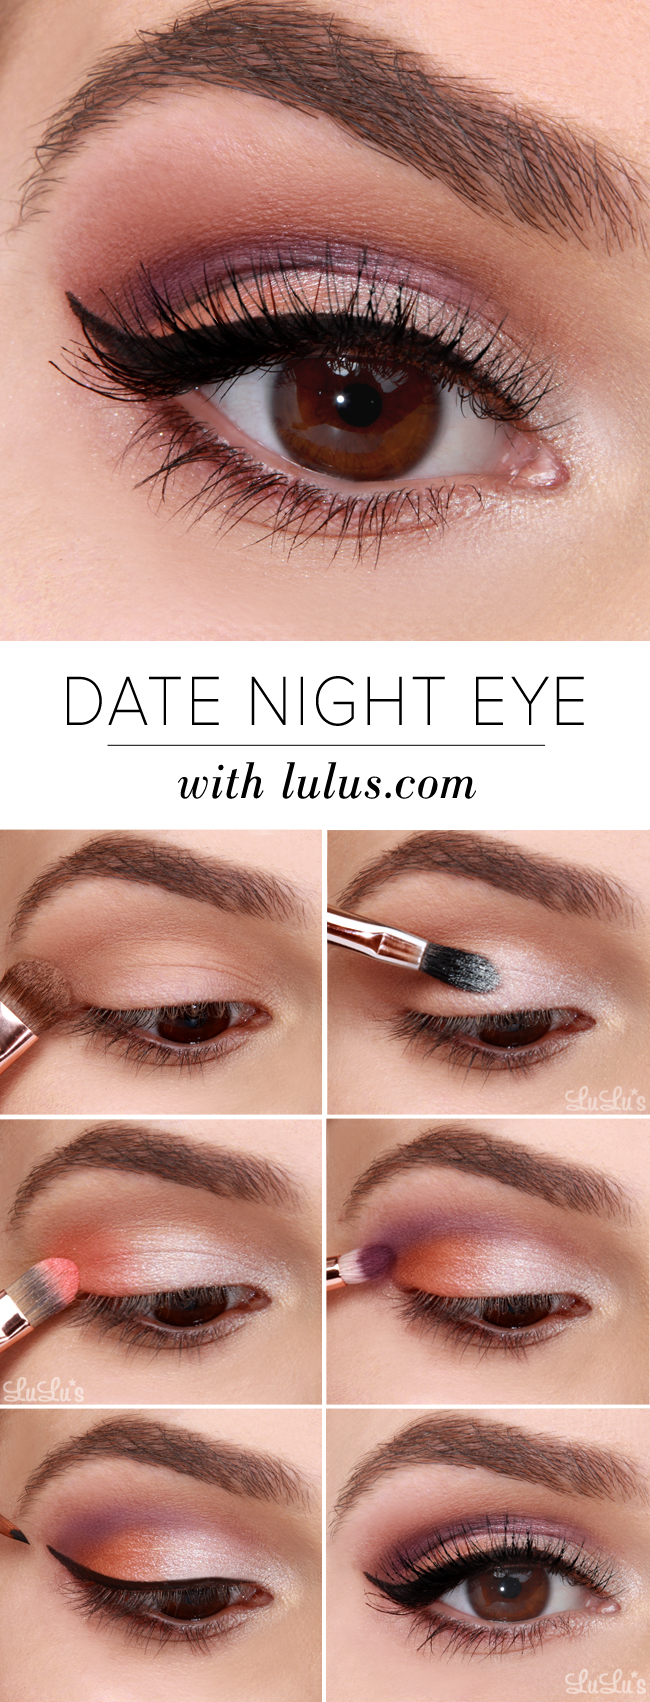 Date Night Eye Makeup